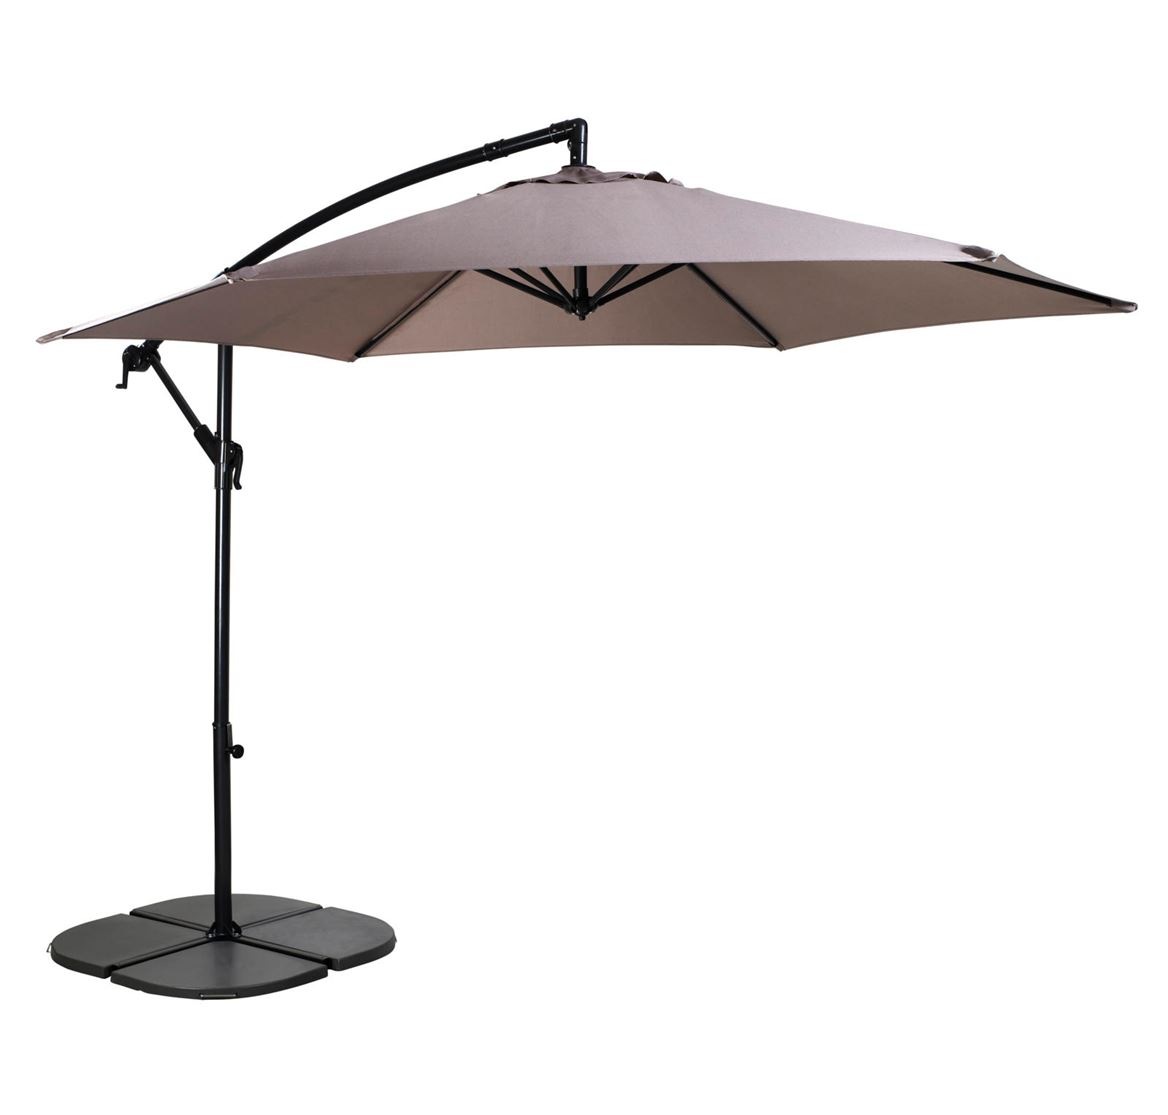 hawai parasol d port taupe h 243 cm 300 cm sp cialiste depuis 40 ans d j casa. Black Bedroom Furniture Sets. Home Design Ideas